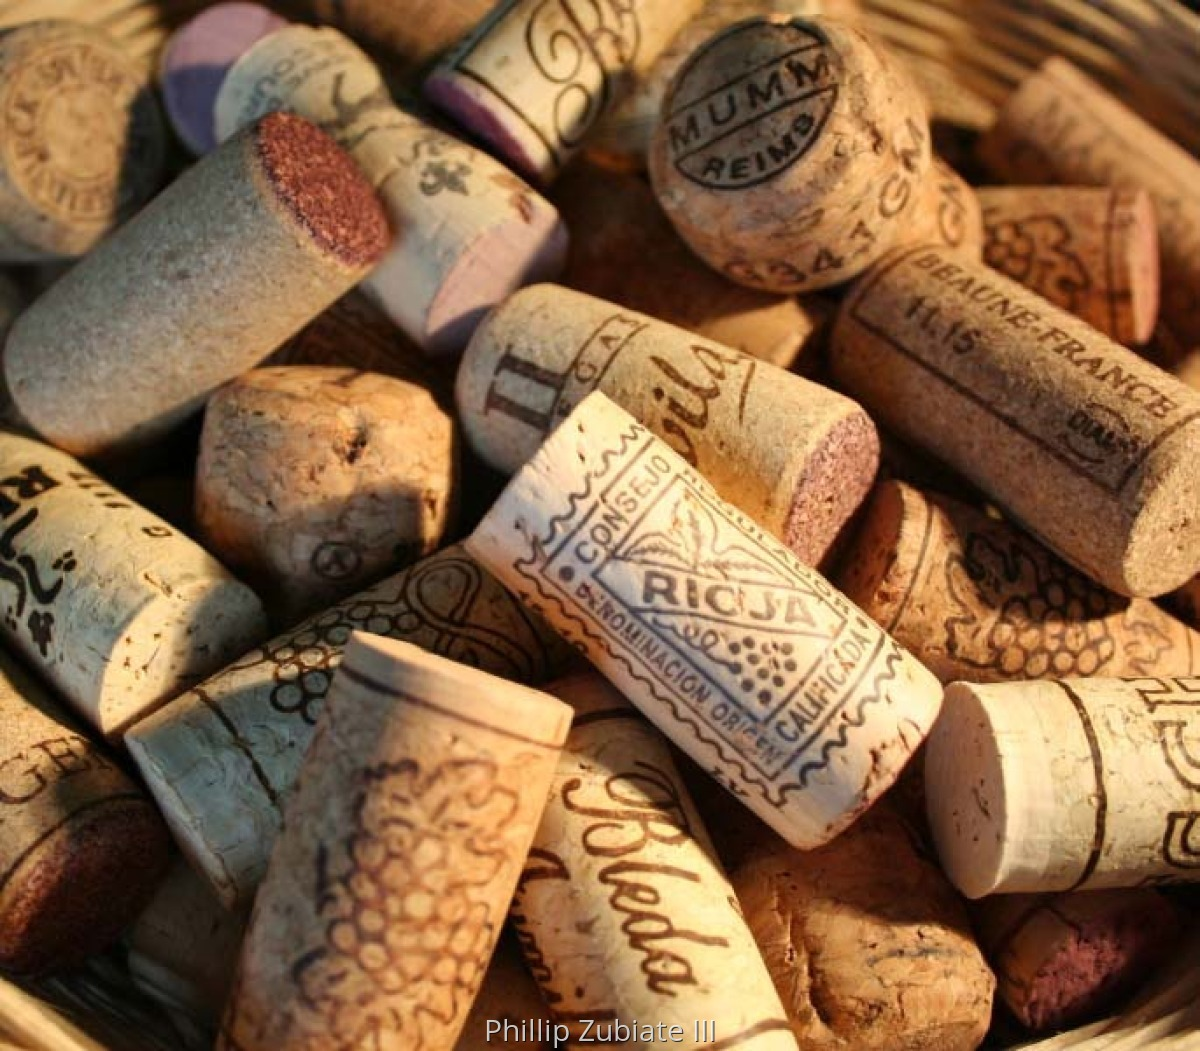 Corks (large view)